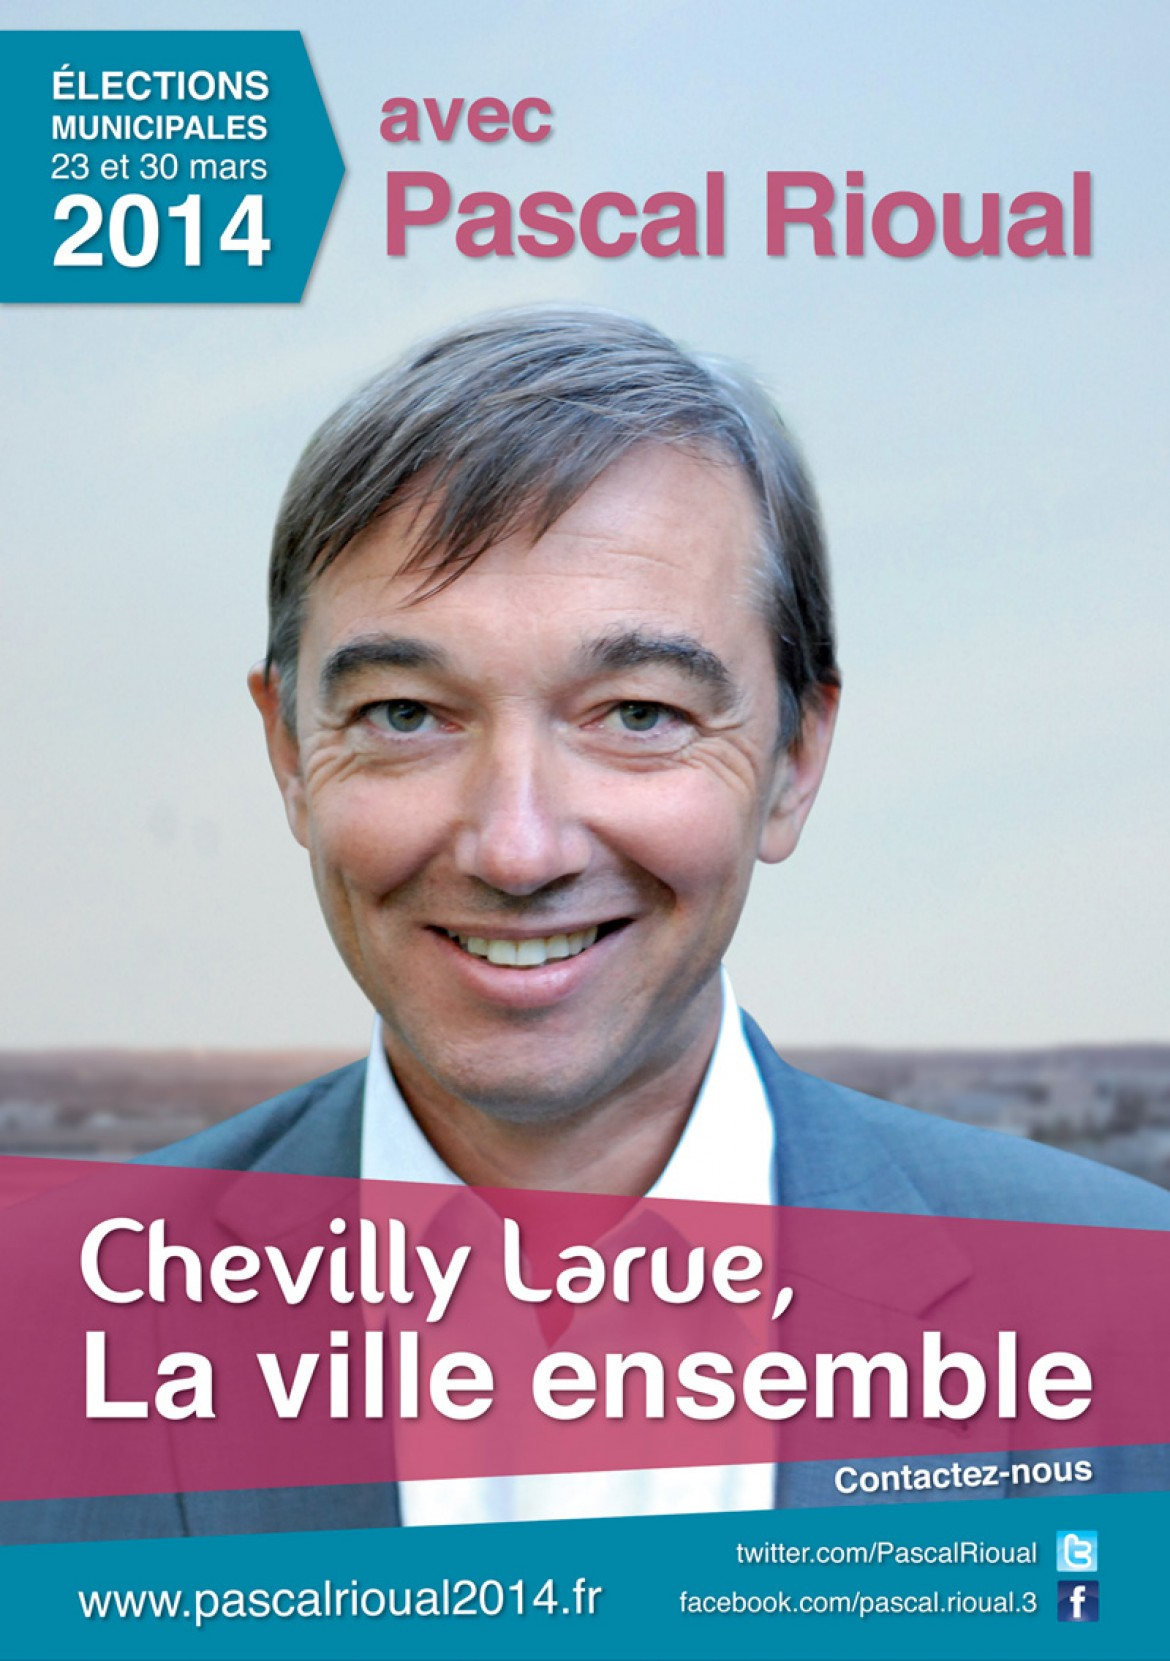 campagne élections municipales Chevilly-Larue